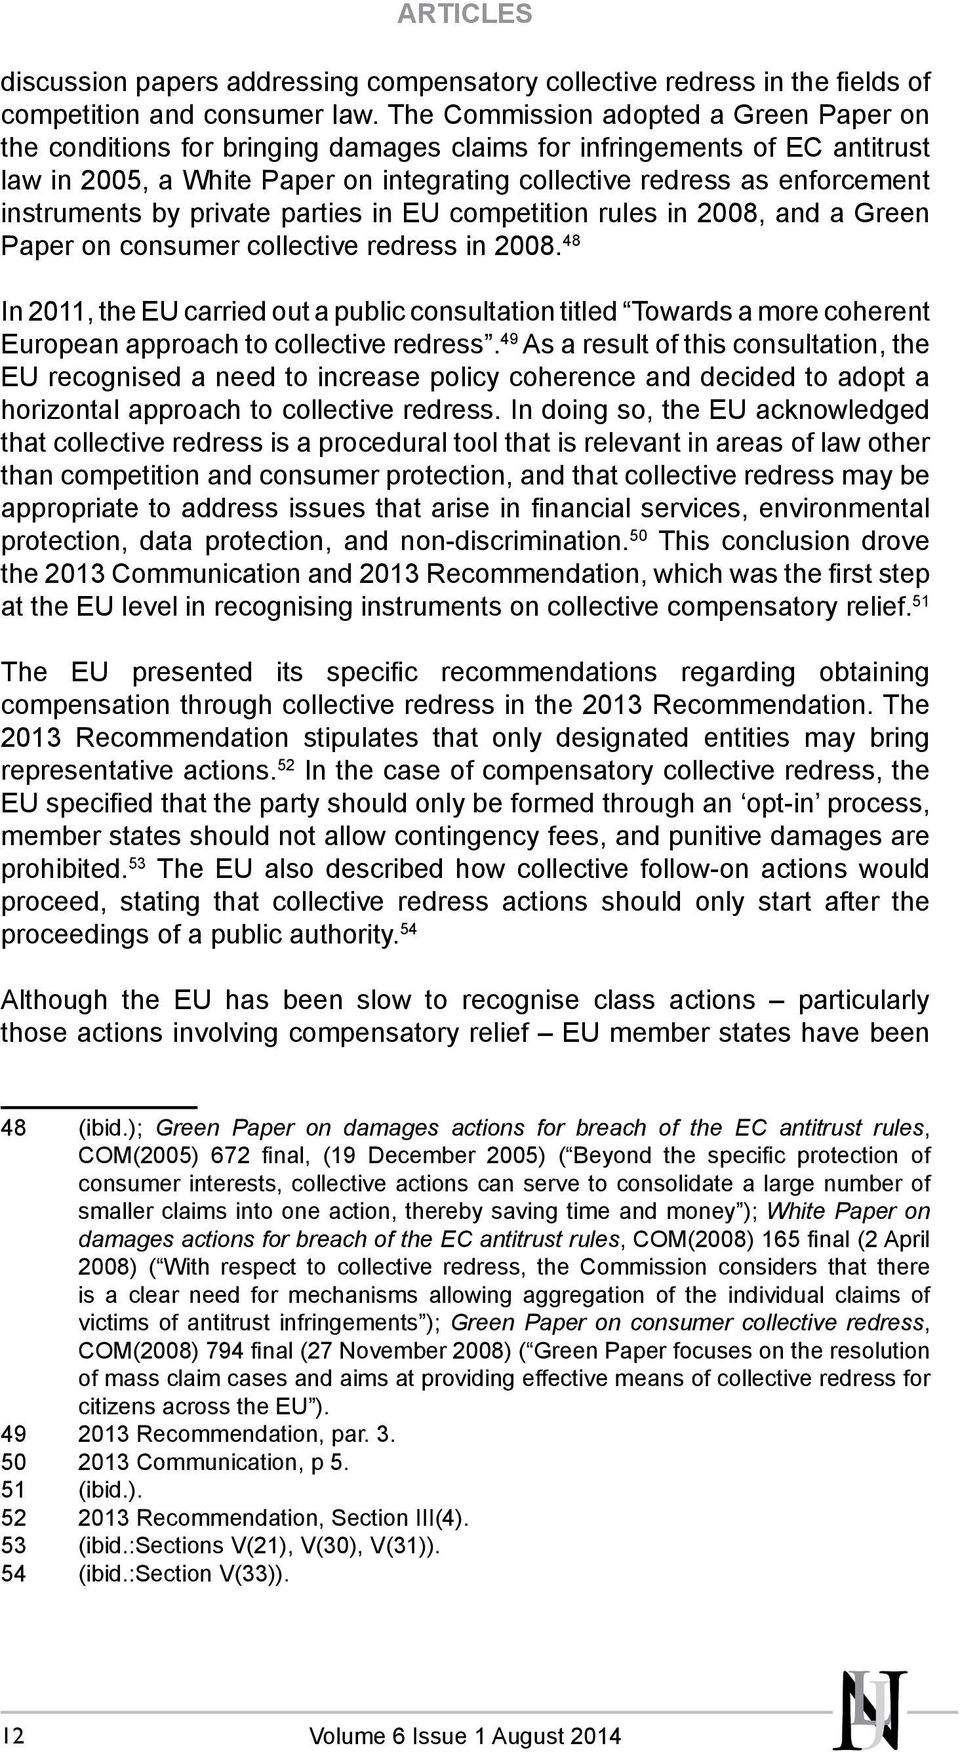 instruments by private parties in EU competition rules in 2008, and a Green Paper on consumer collective redress in 2008.